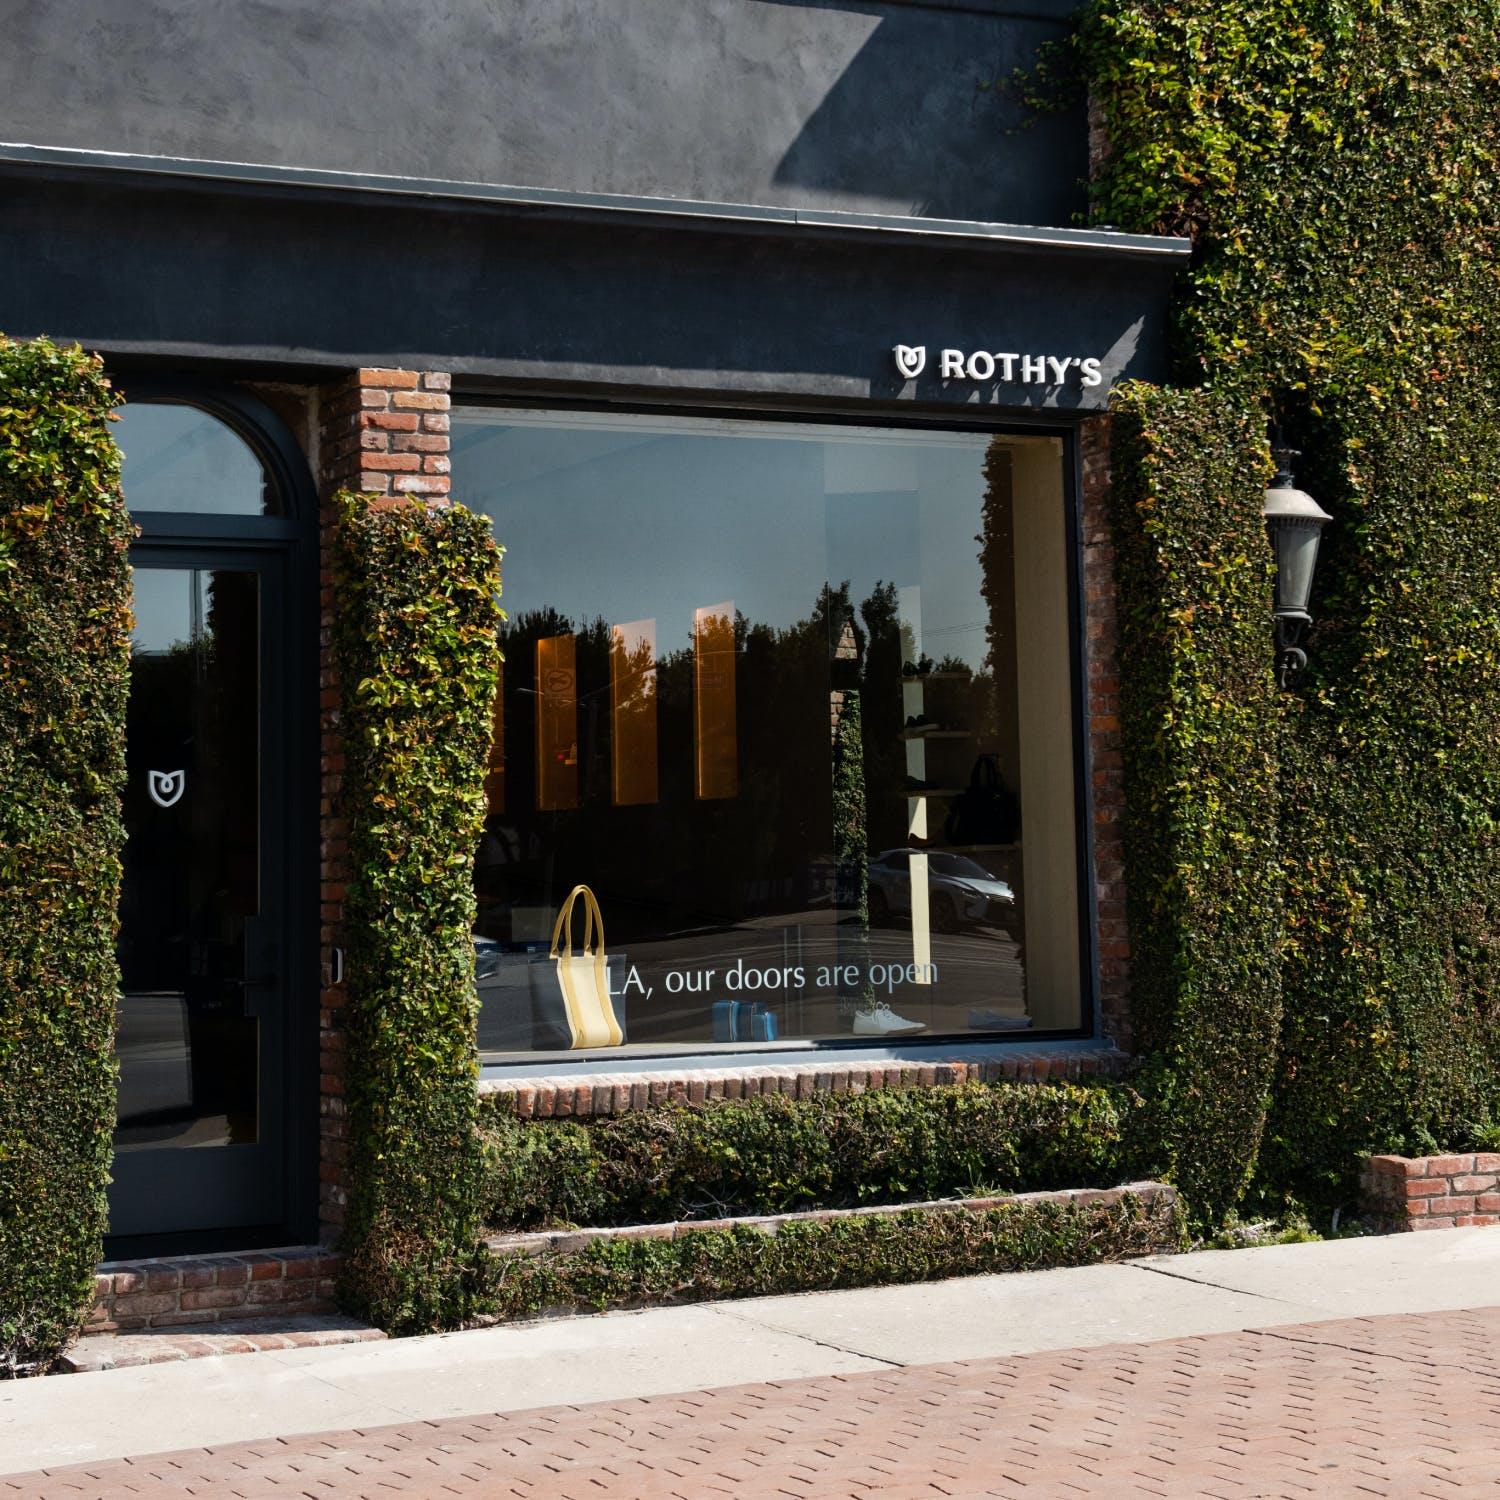 A photo of the storefront of the Melrose store in LA.